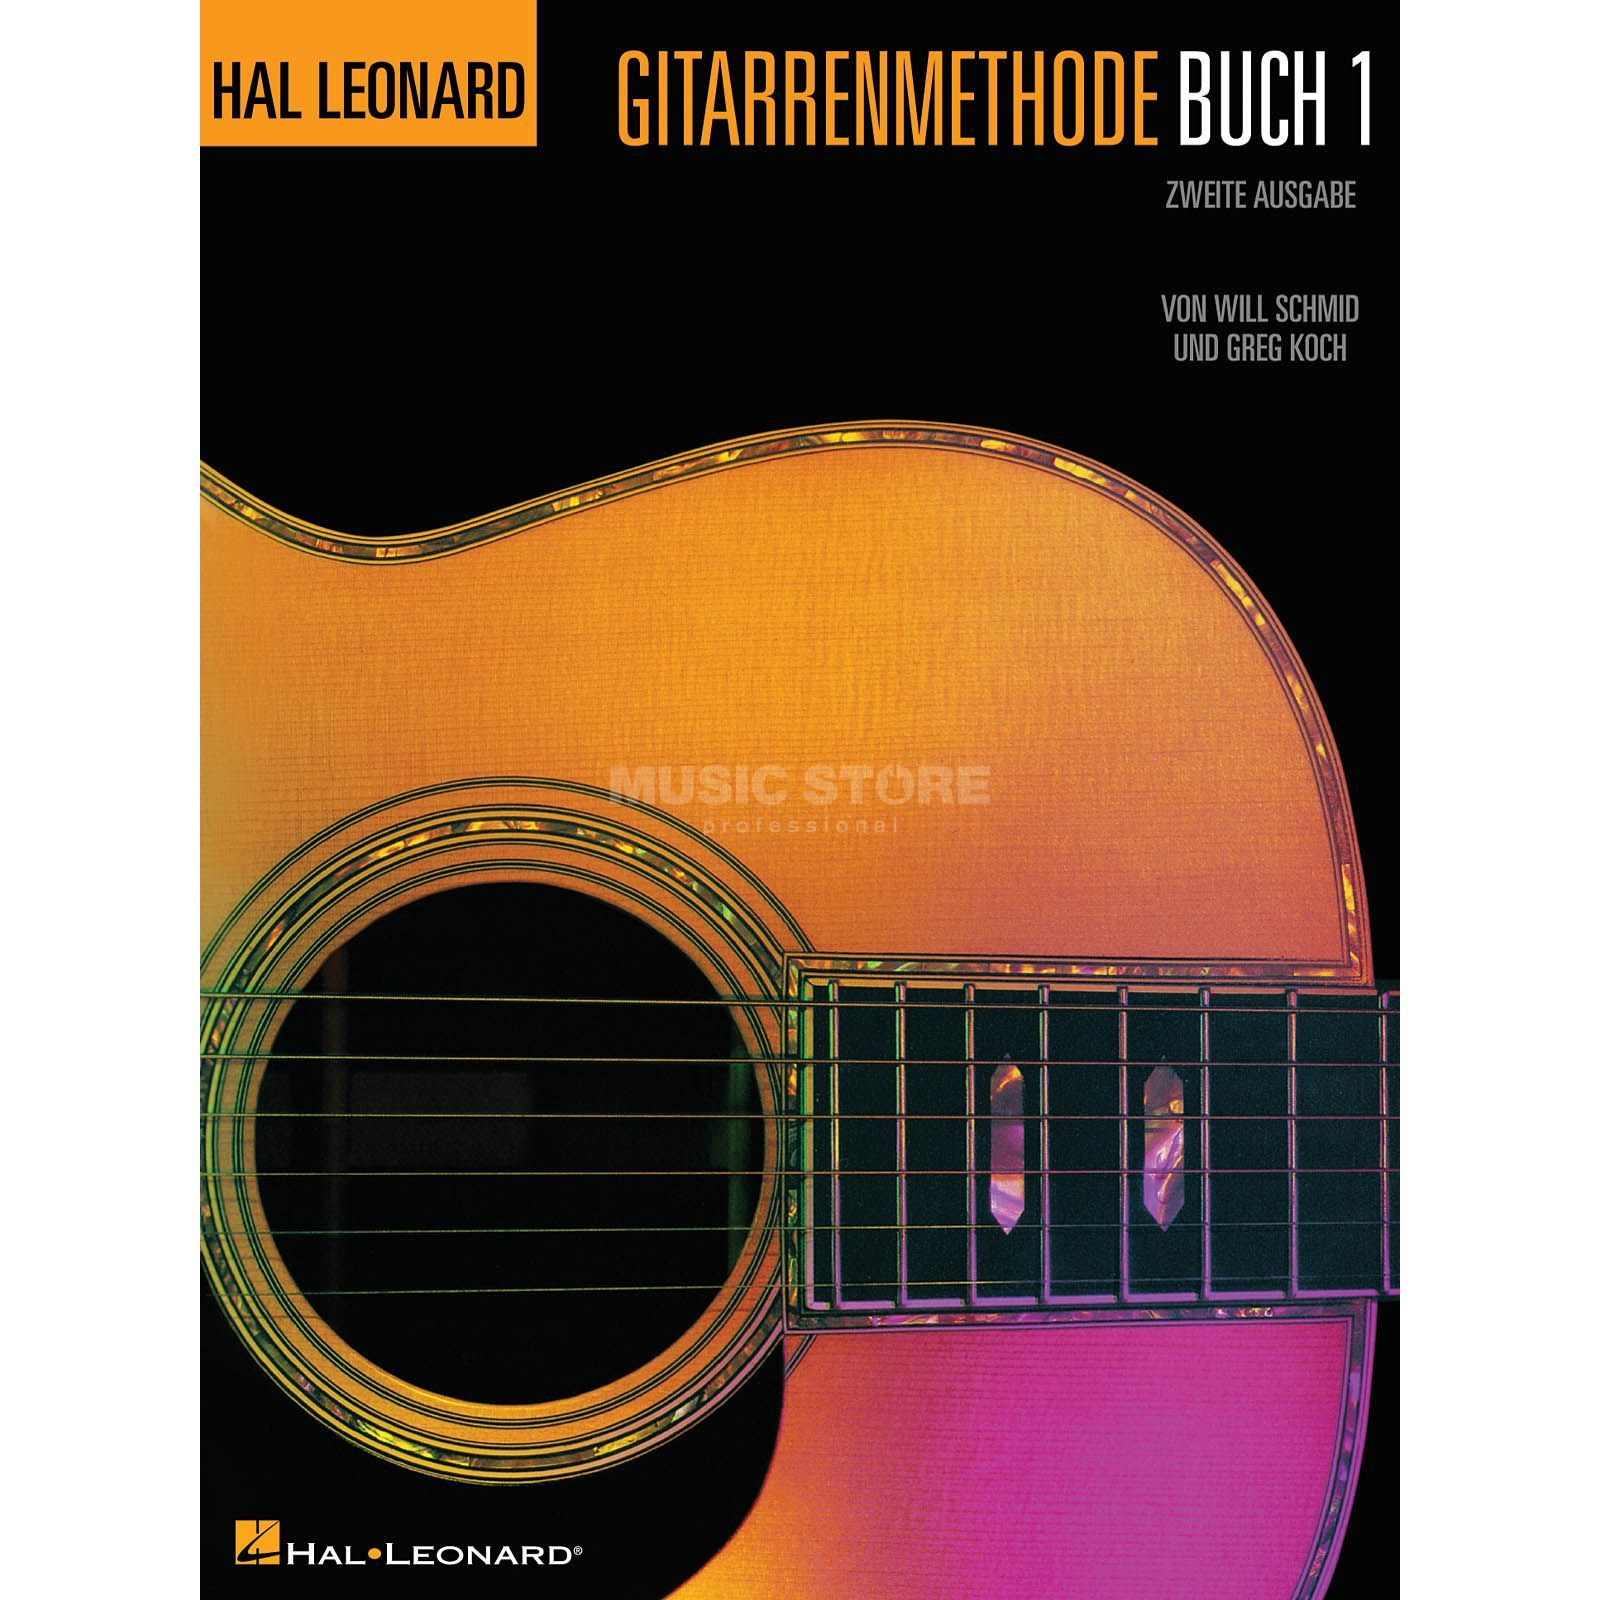 Bosworth Music HLGM Gitarrenmethode Buch 1 Buch und CD Produktbillede